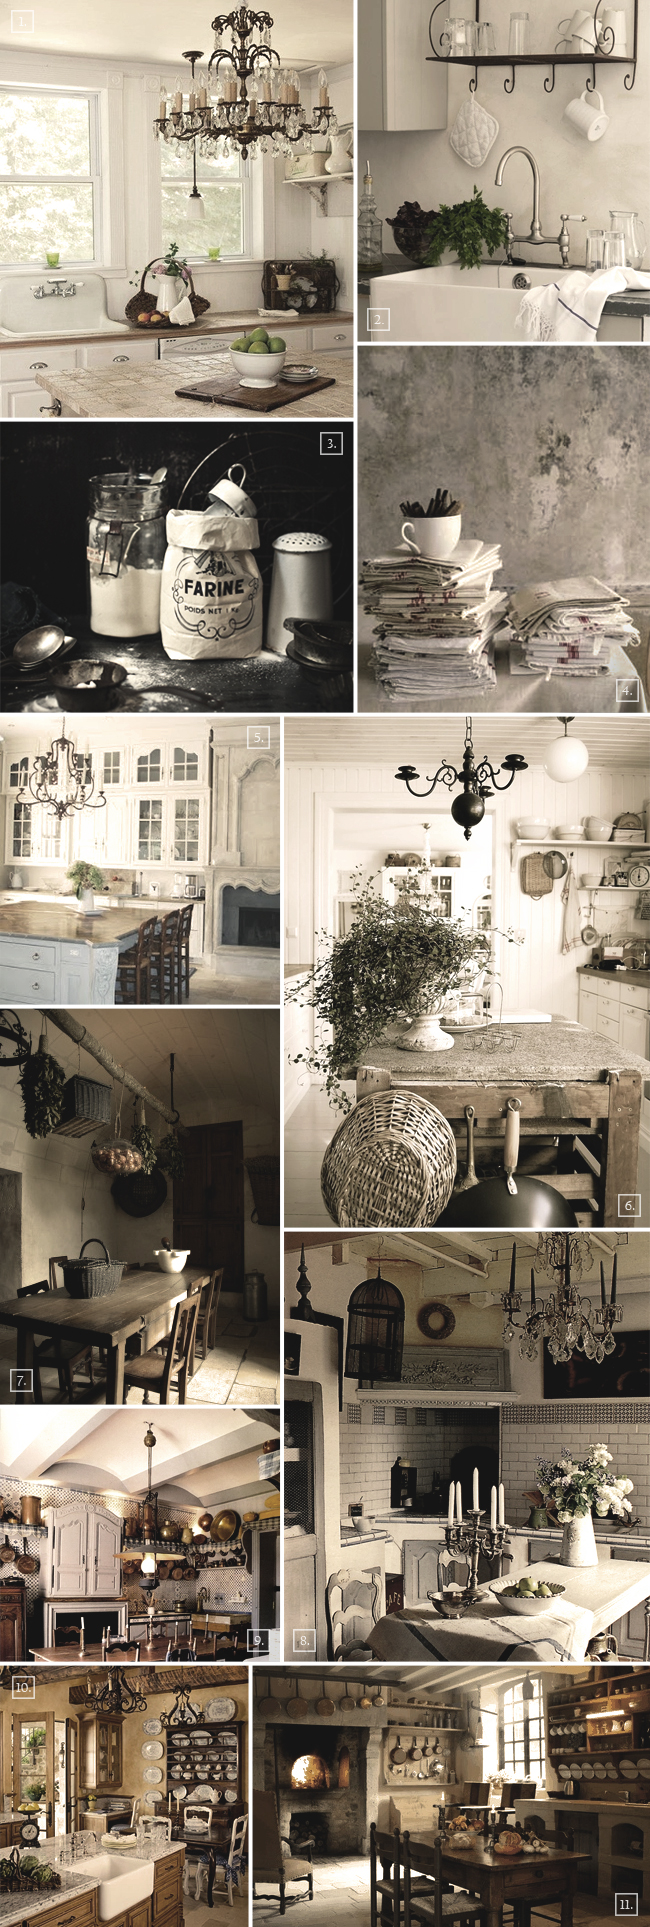 French kitchen decor and designs mood board home tree atlas for French country decor kitchen ideas